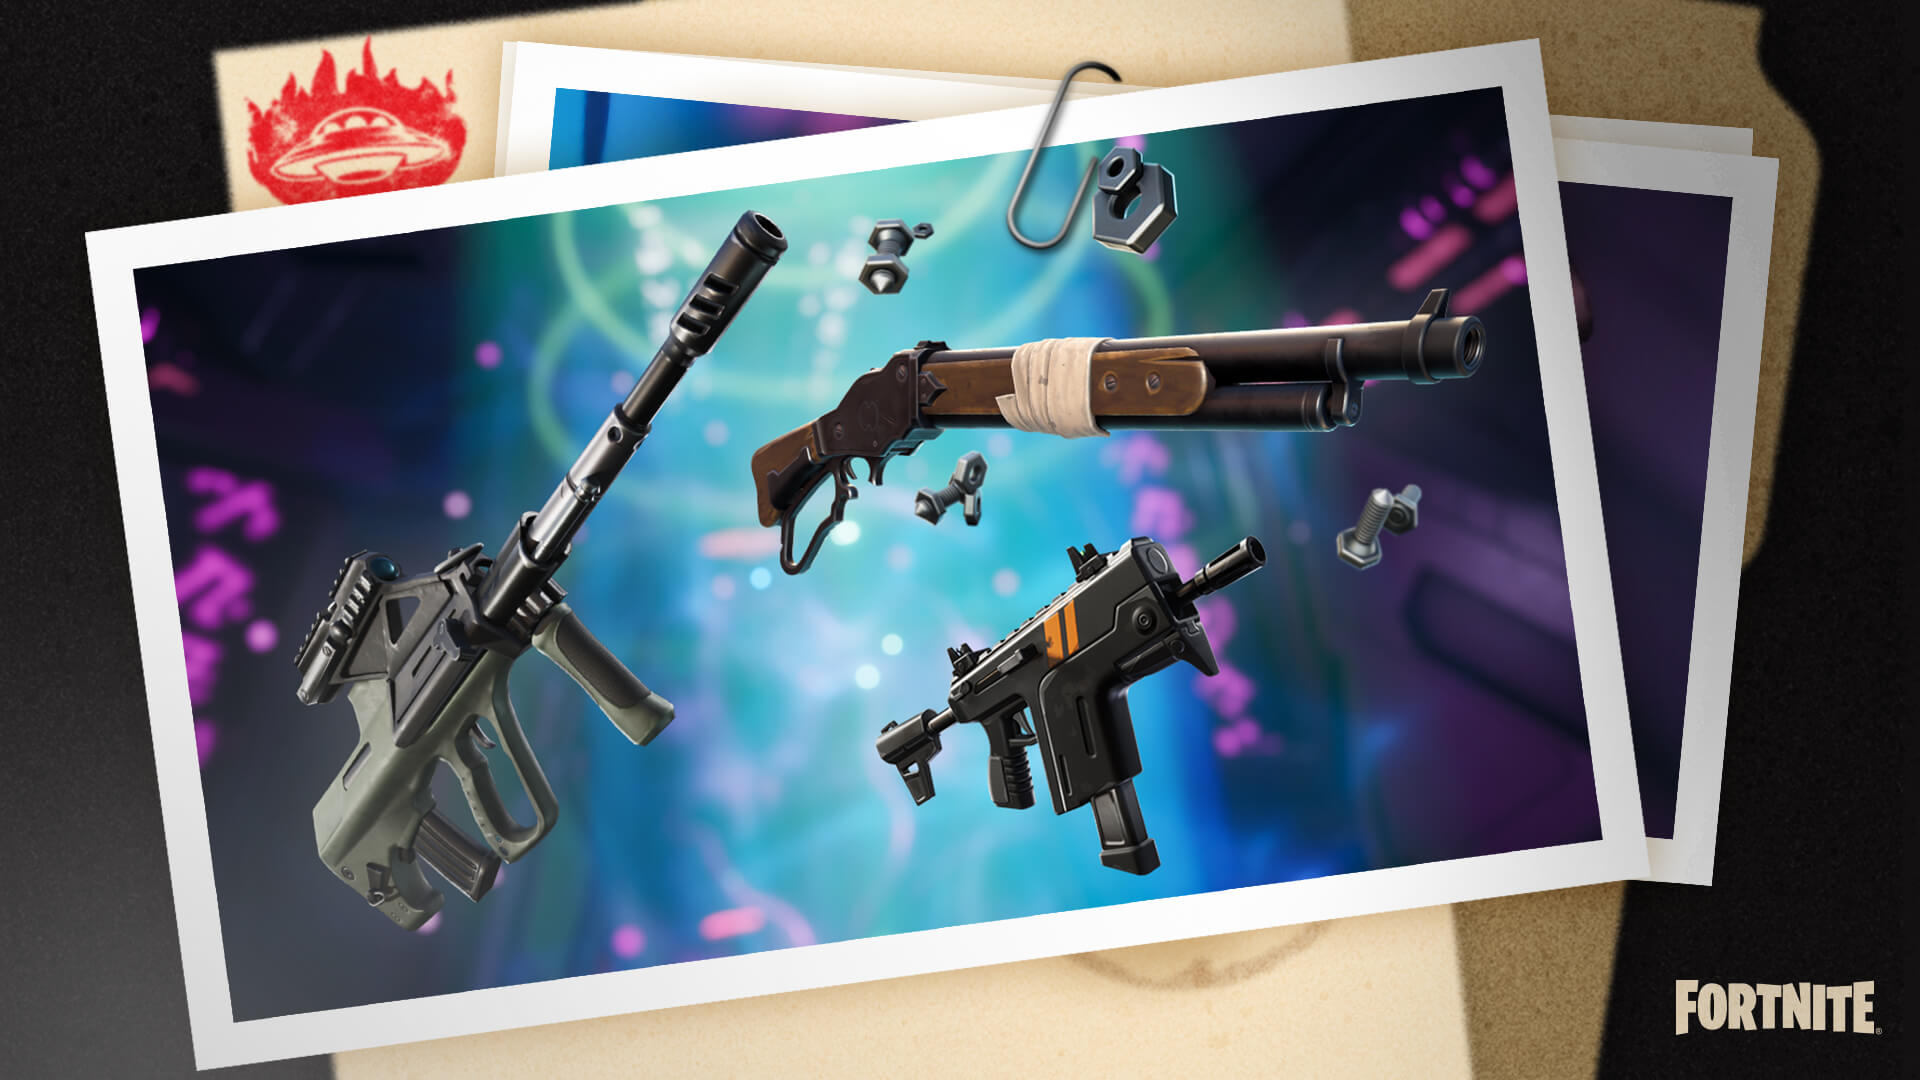 Alle unvaulted & vaulted wapens in Fortnite Season 7